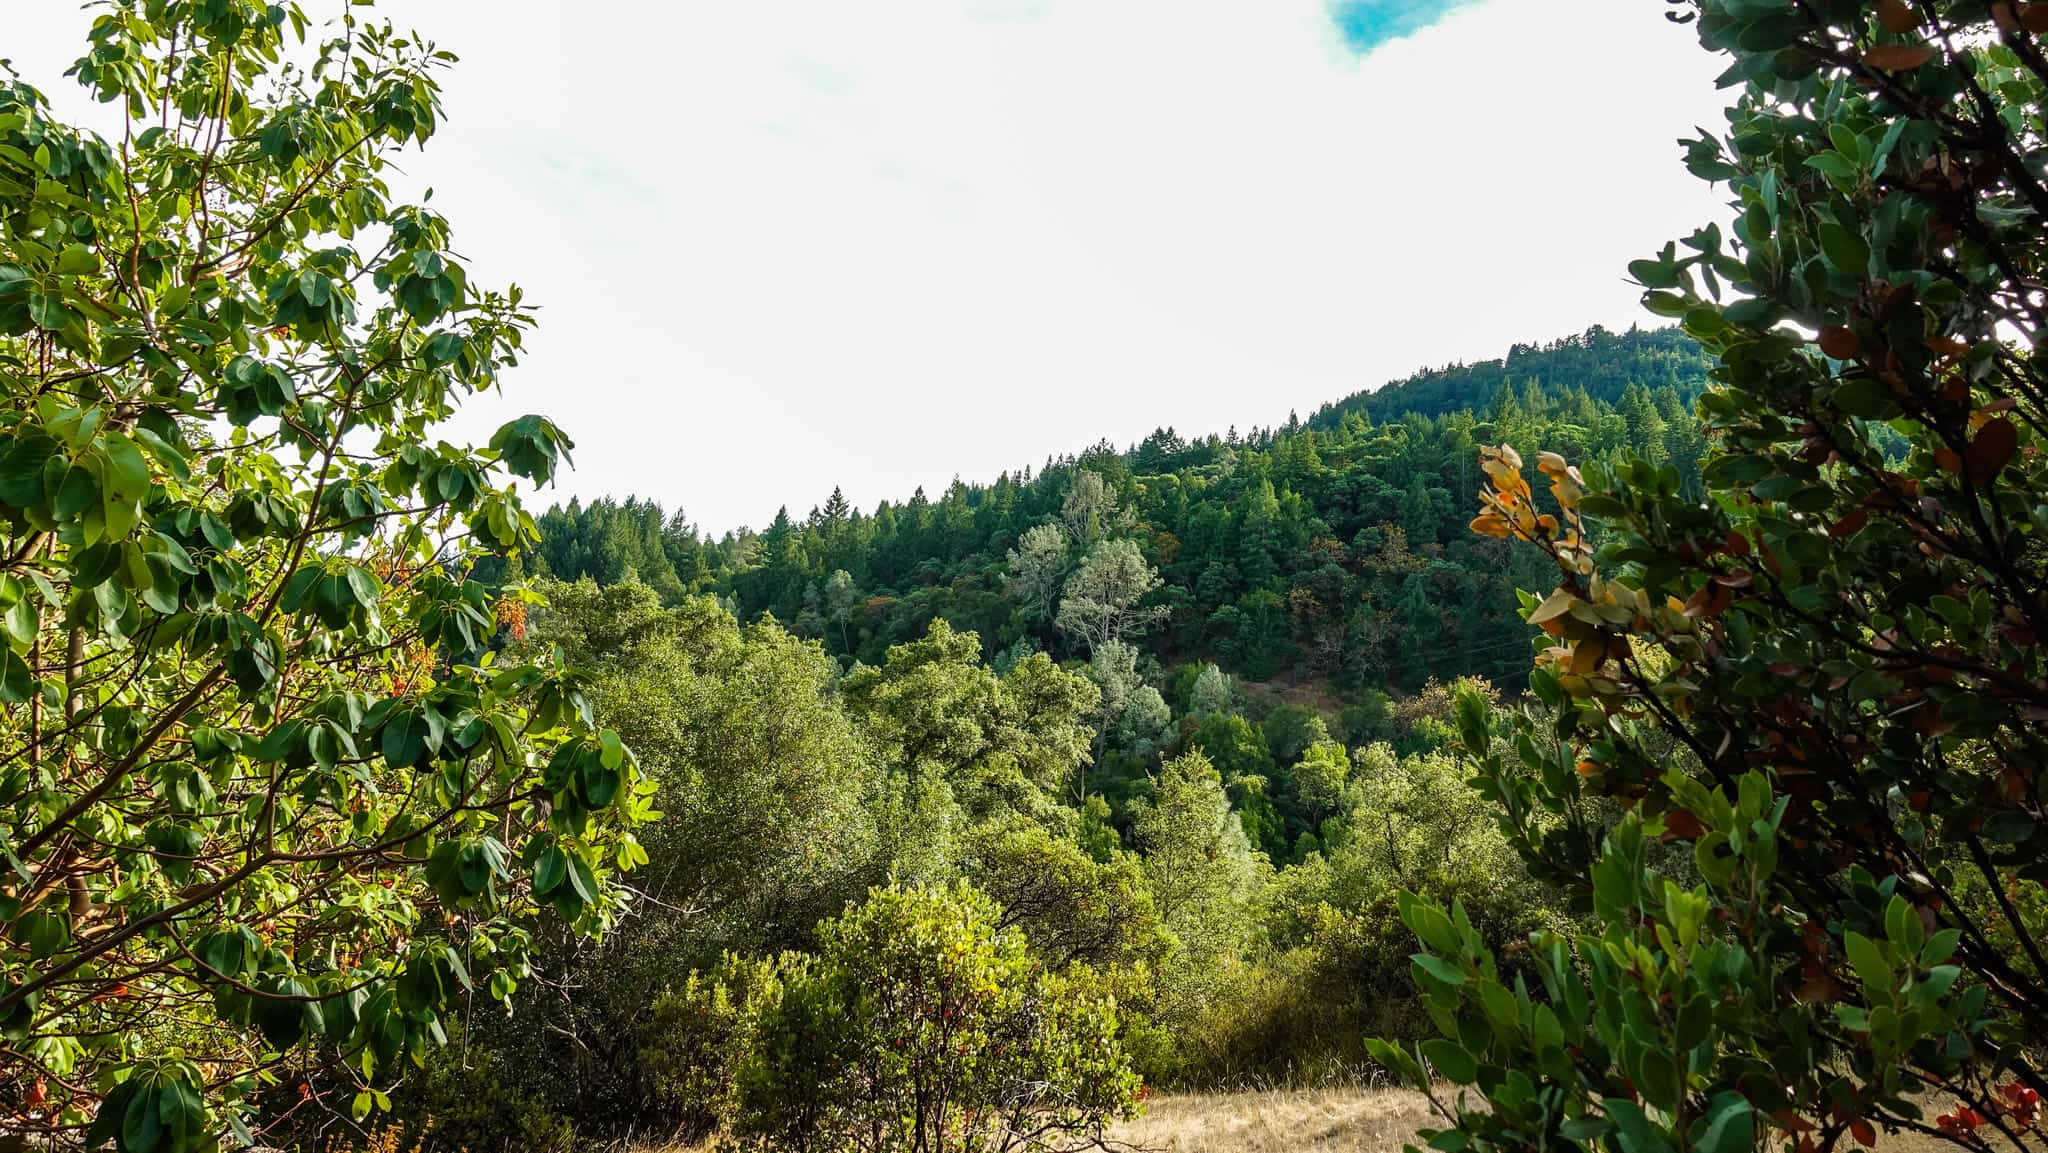 Be Sure to Look to your Sides Along Lake Sonoma's Trails - Mountain Views Abound!